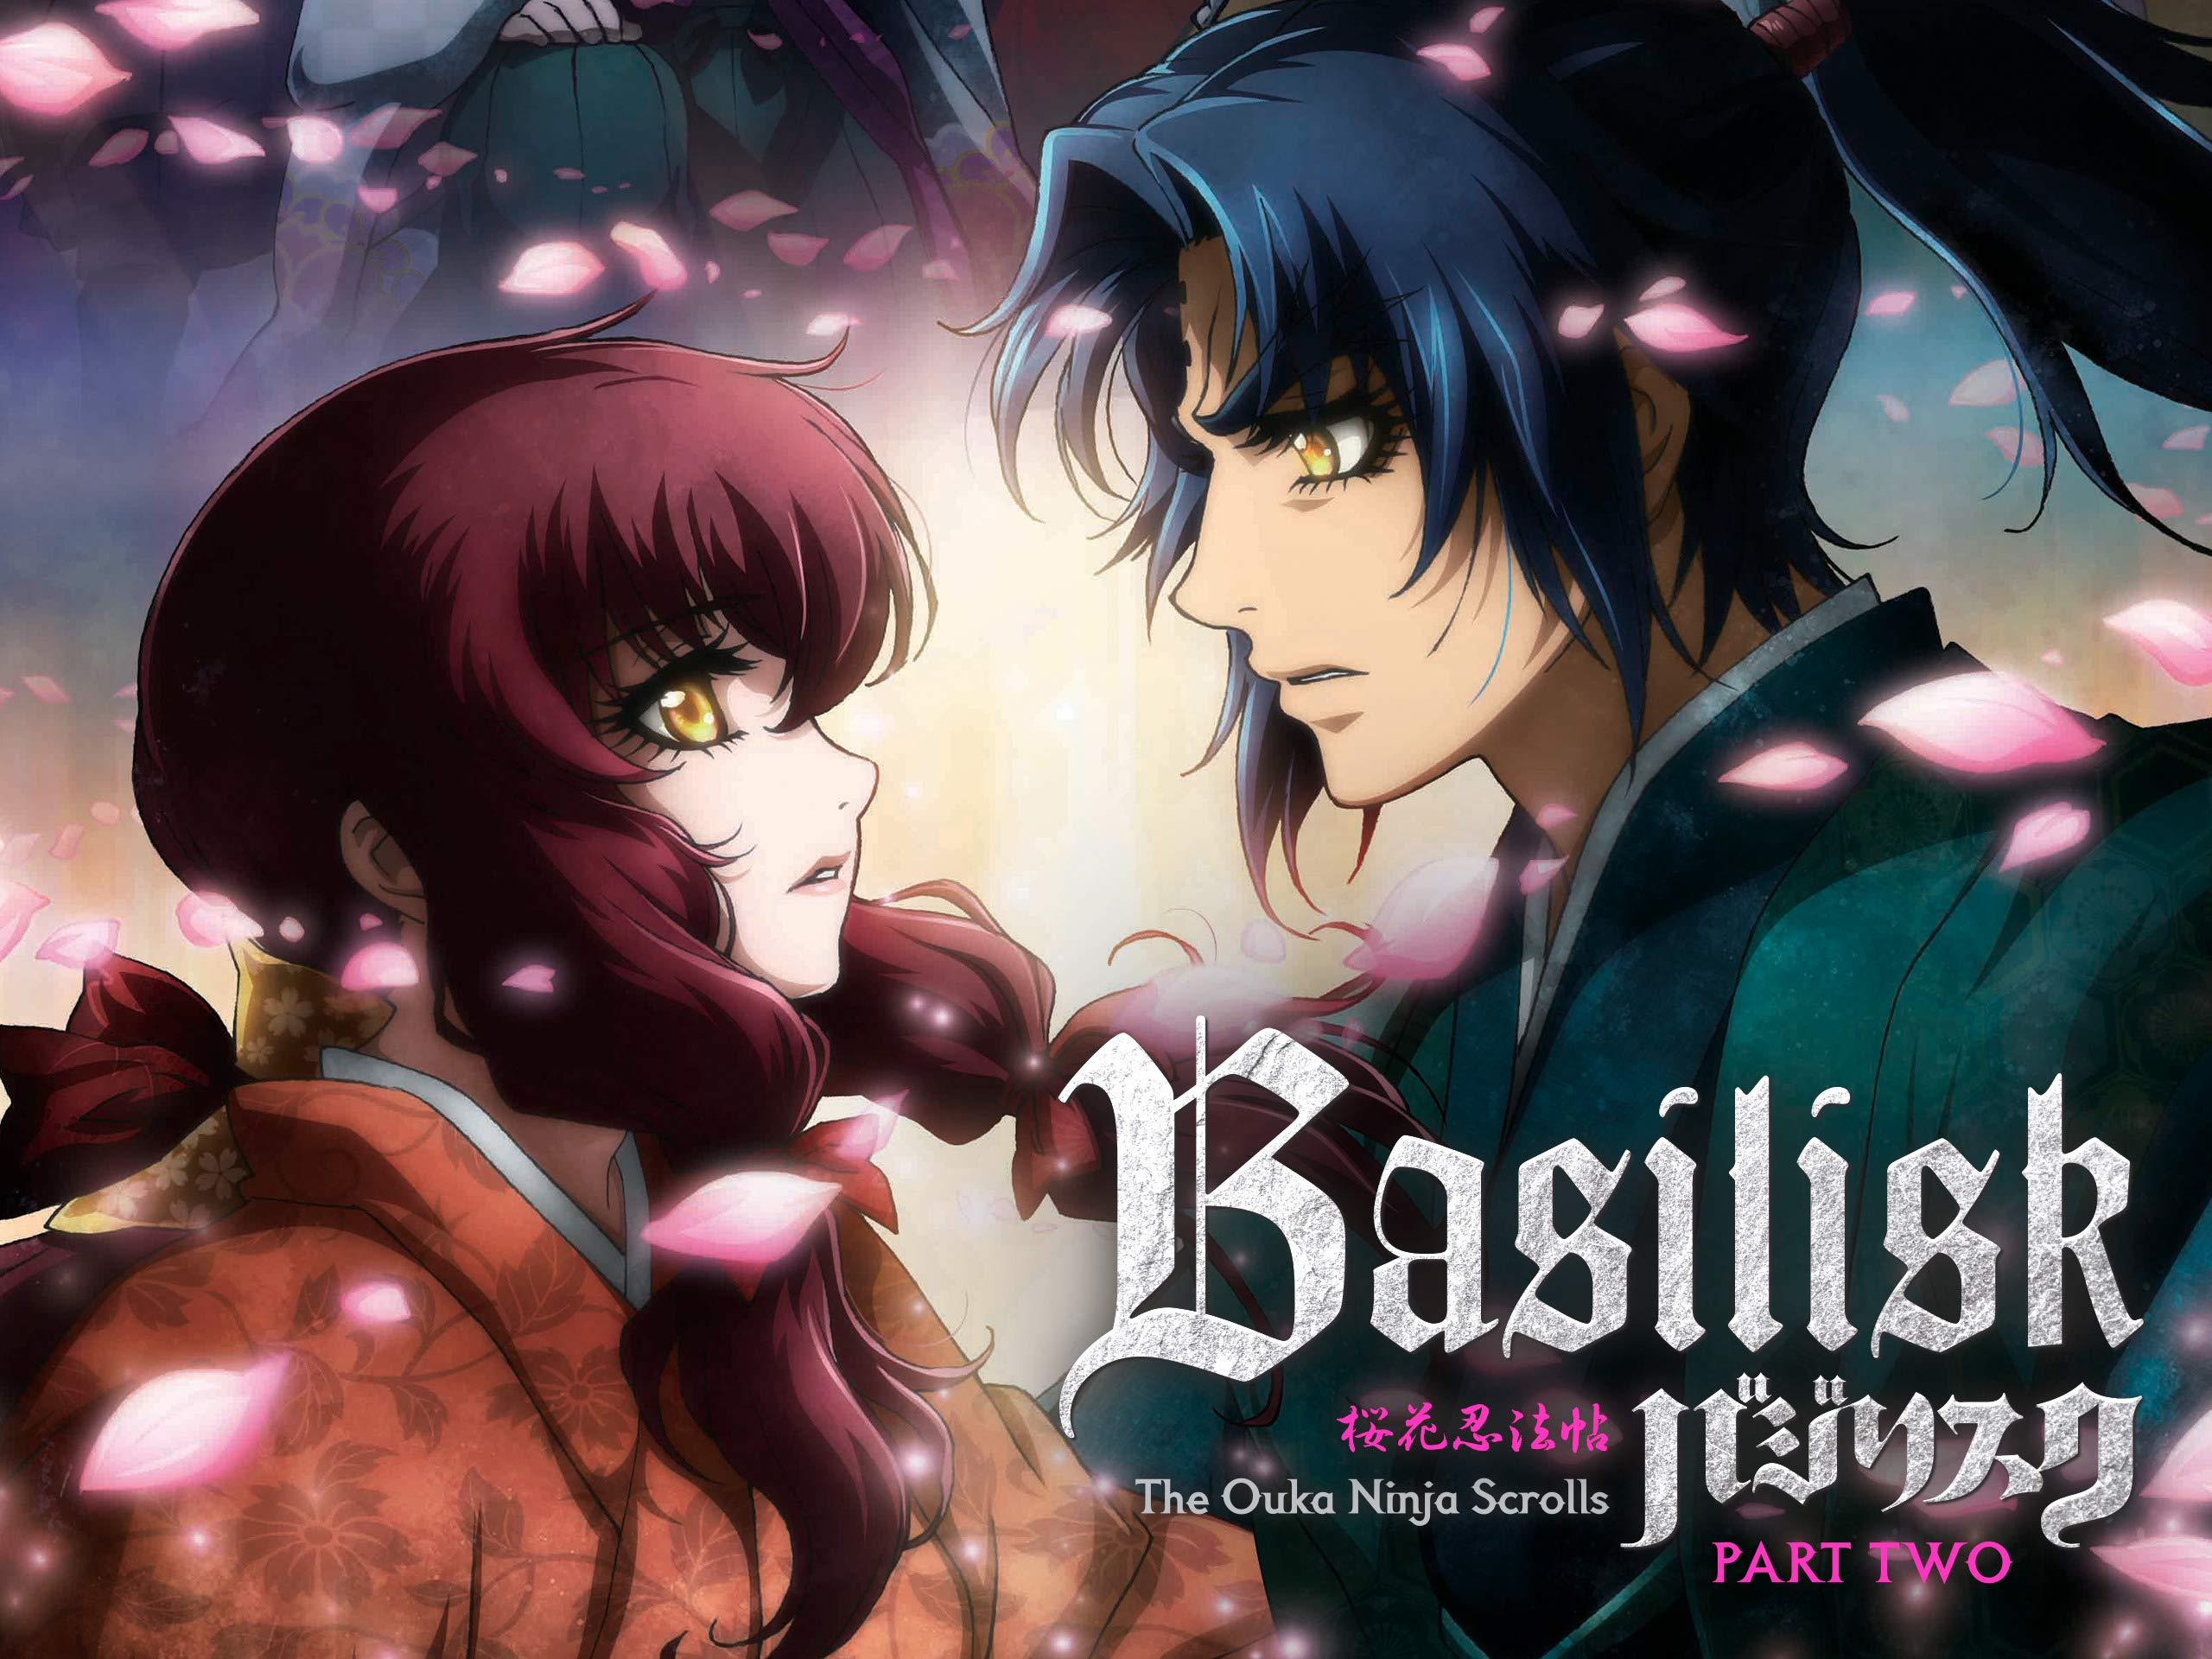 Amazon.com: Watch Basilisk: The Ouka Ninja Scrolls, Pt. 2 ...